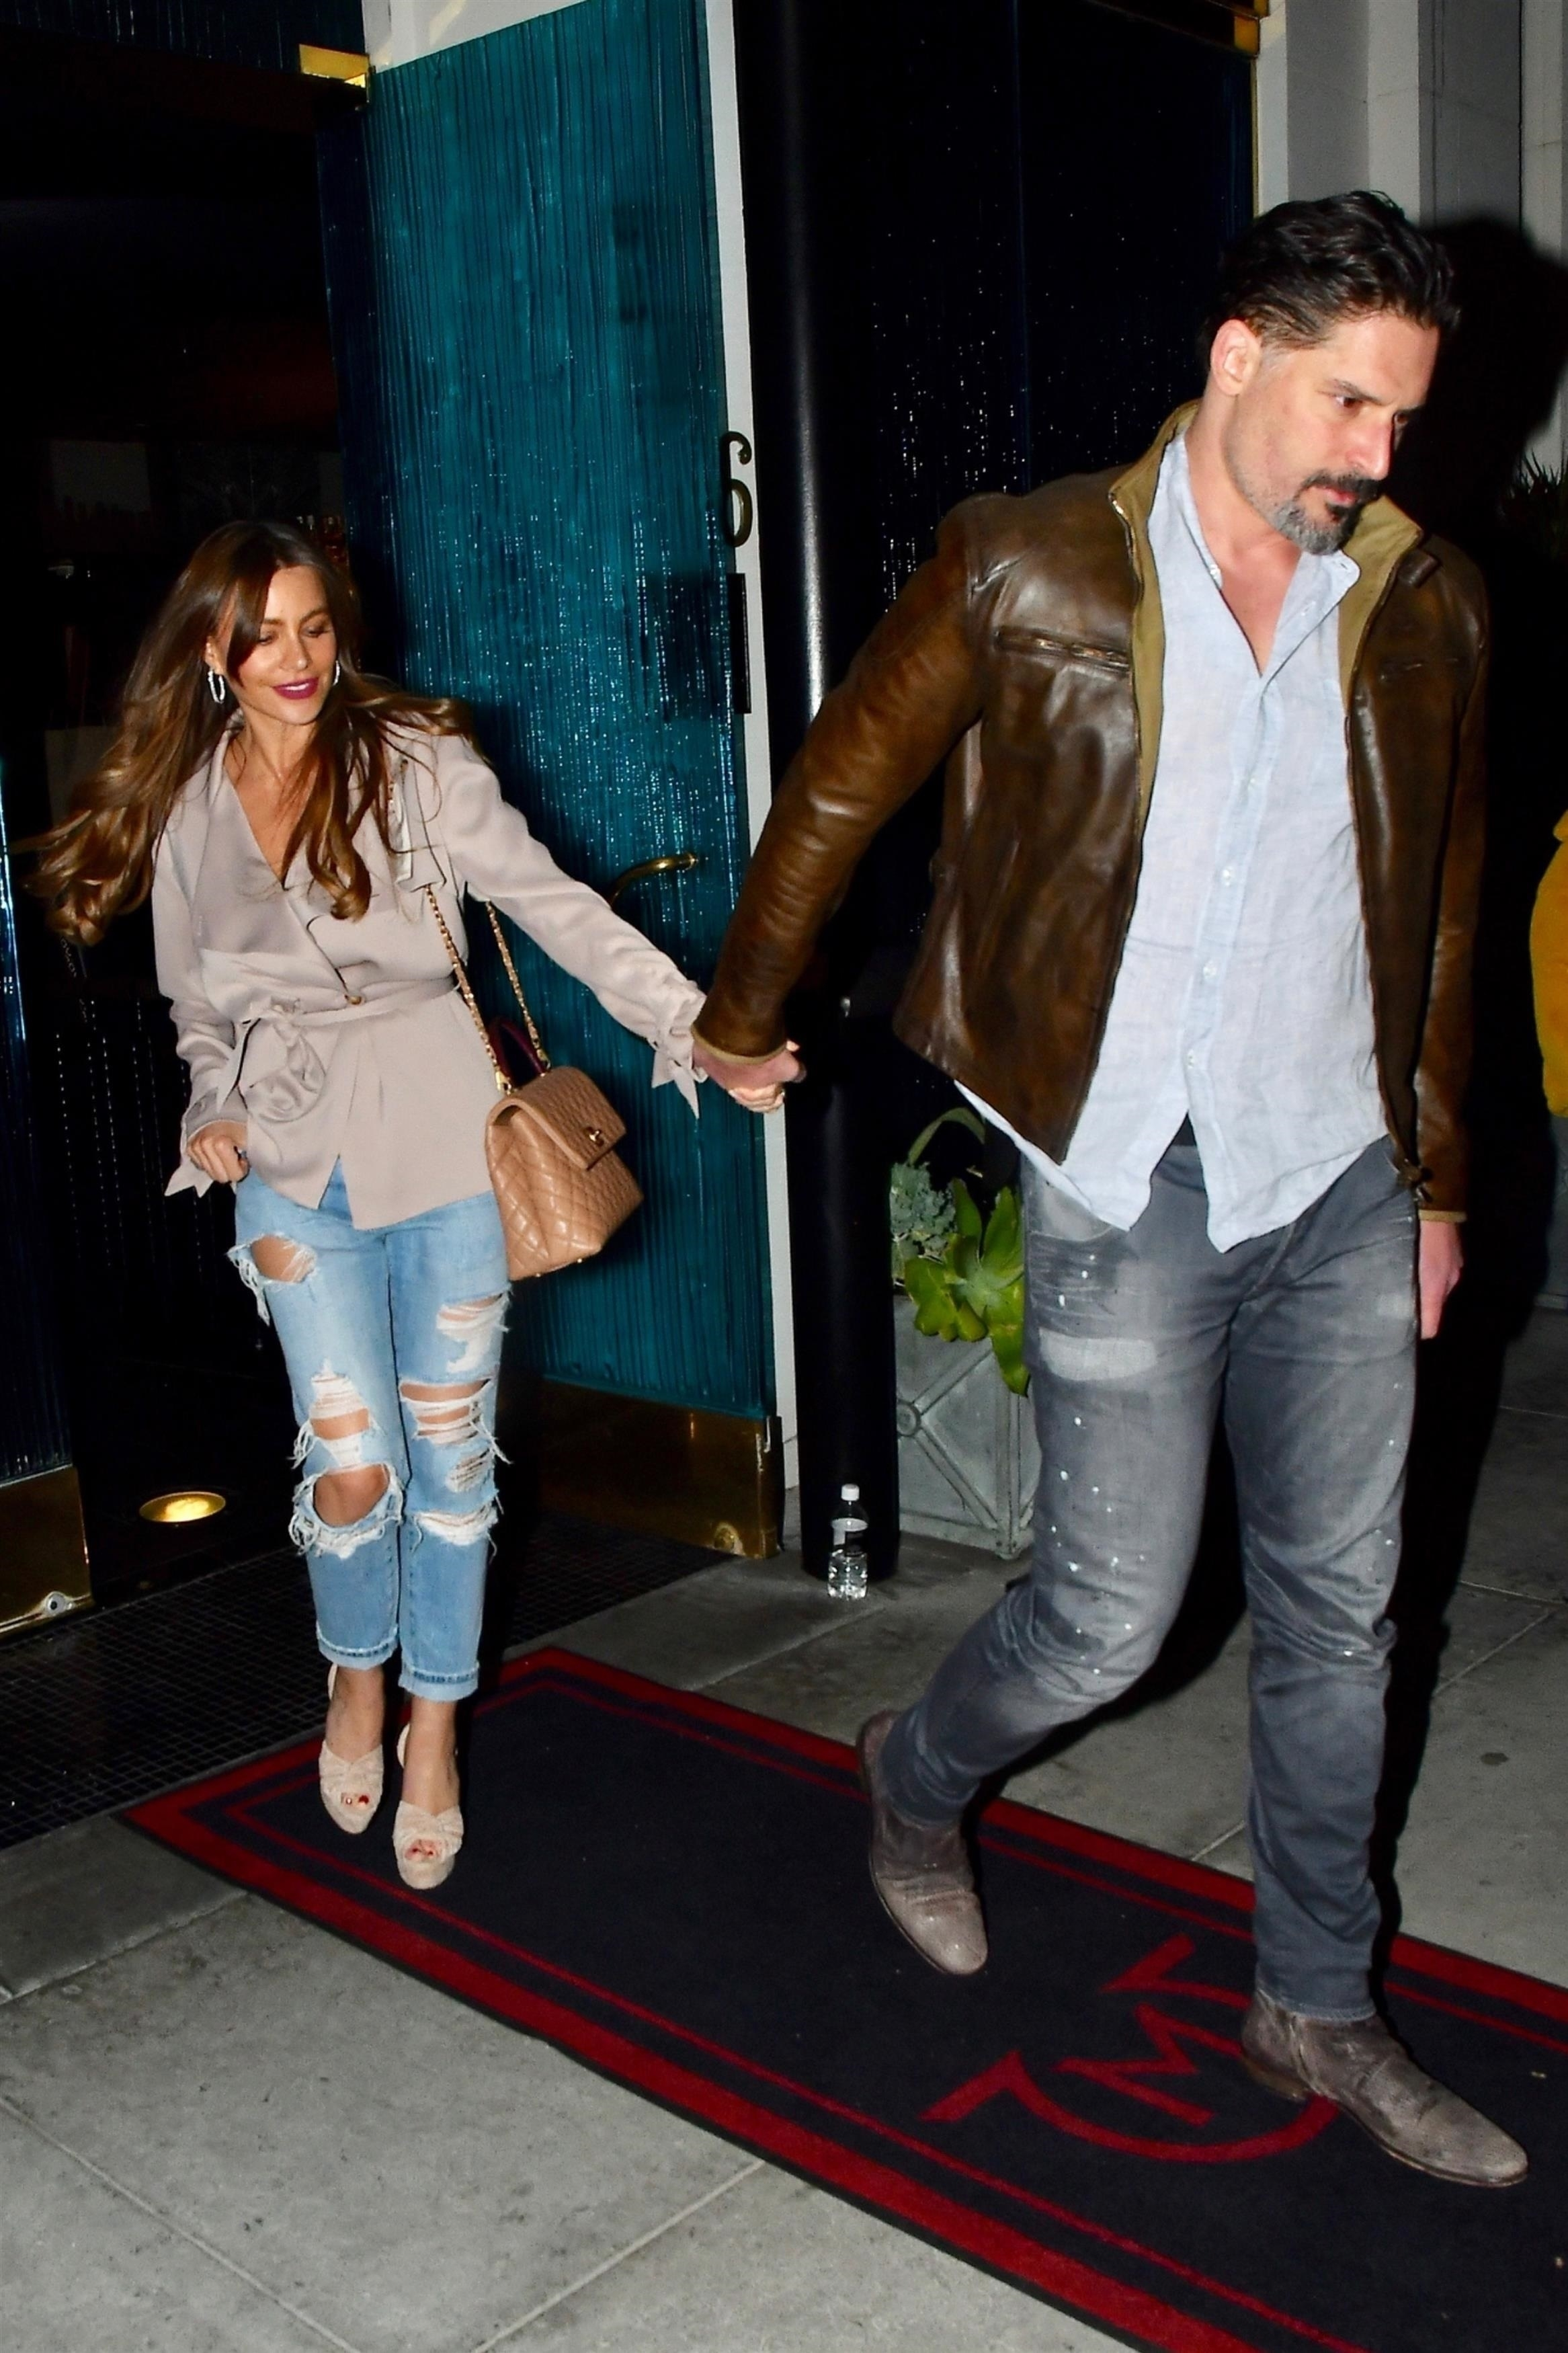 EXCLUSIVE Sofia Vergara and Joe Manganiello Enjoy Date Night at Mastro's